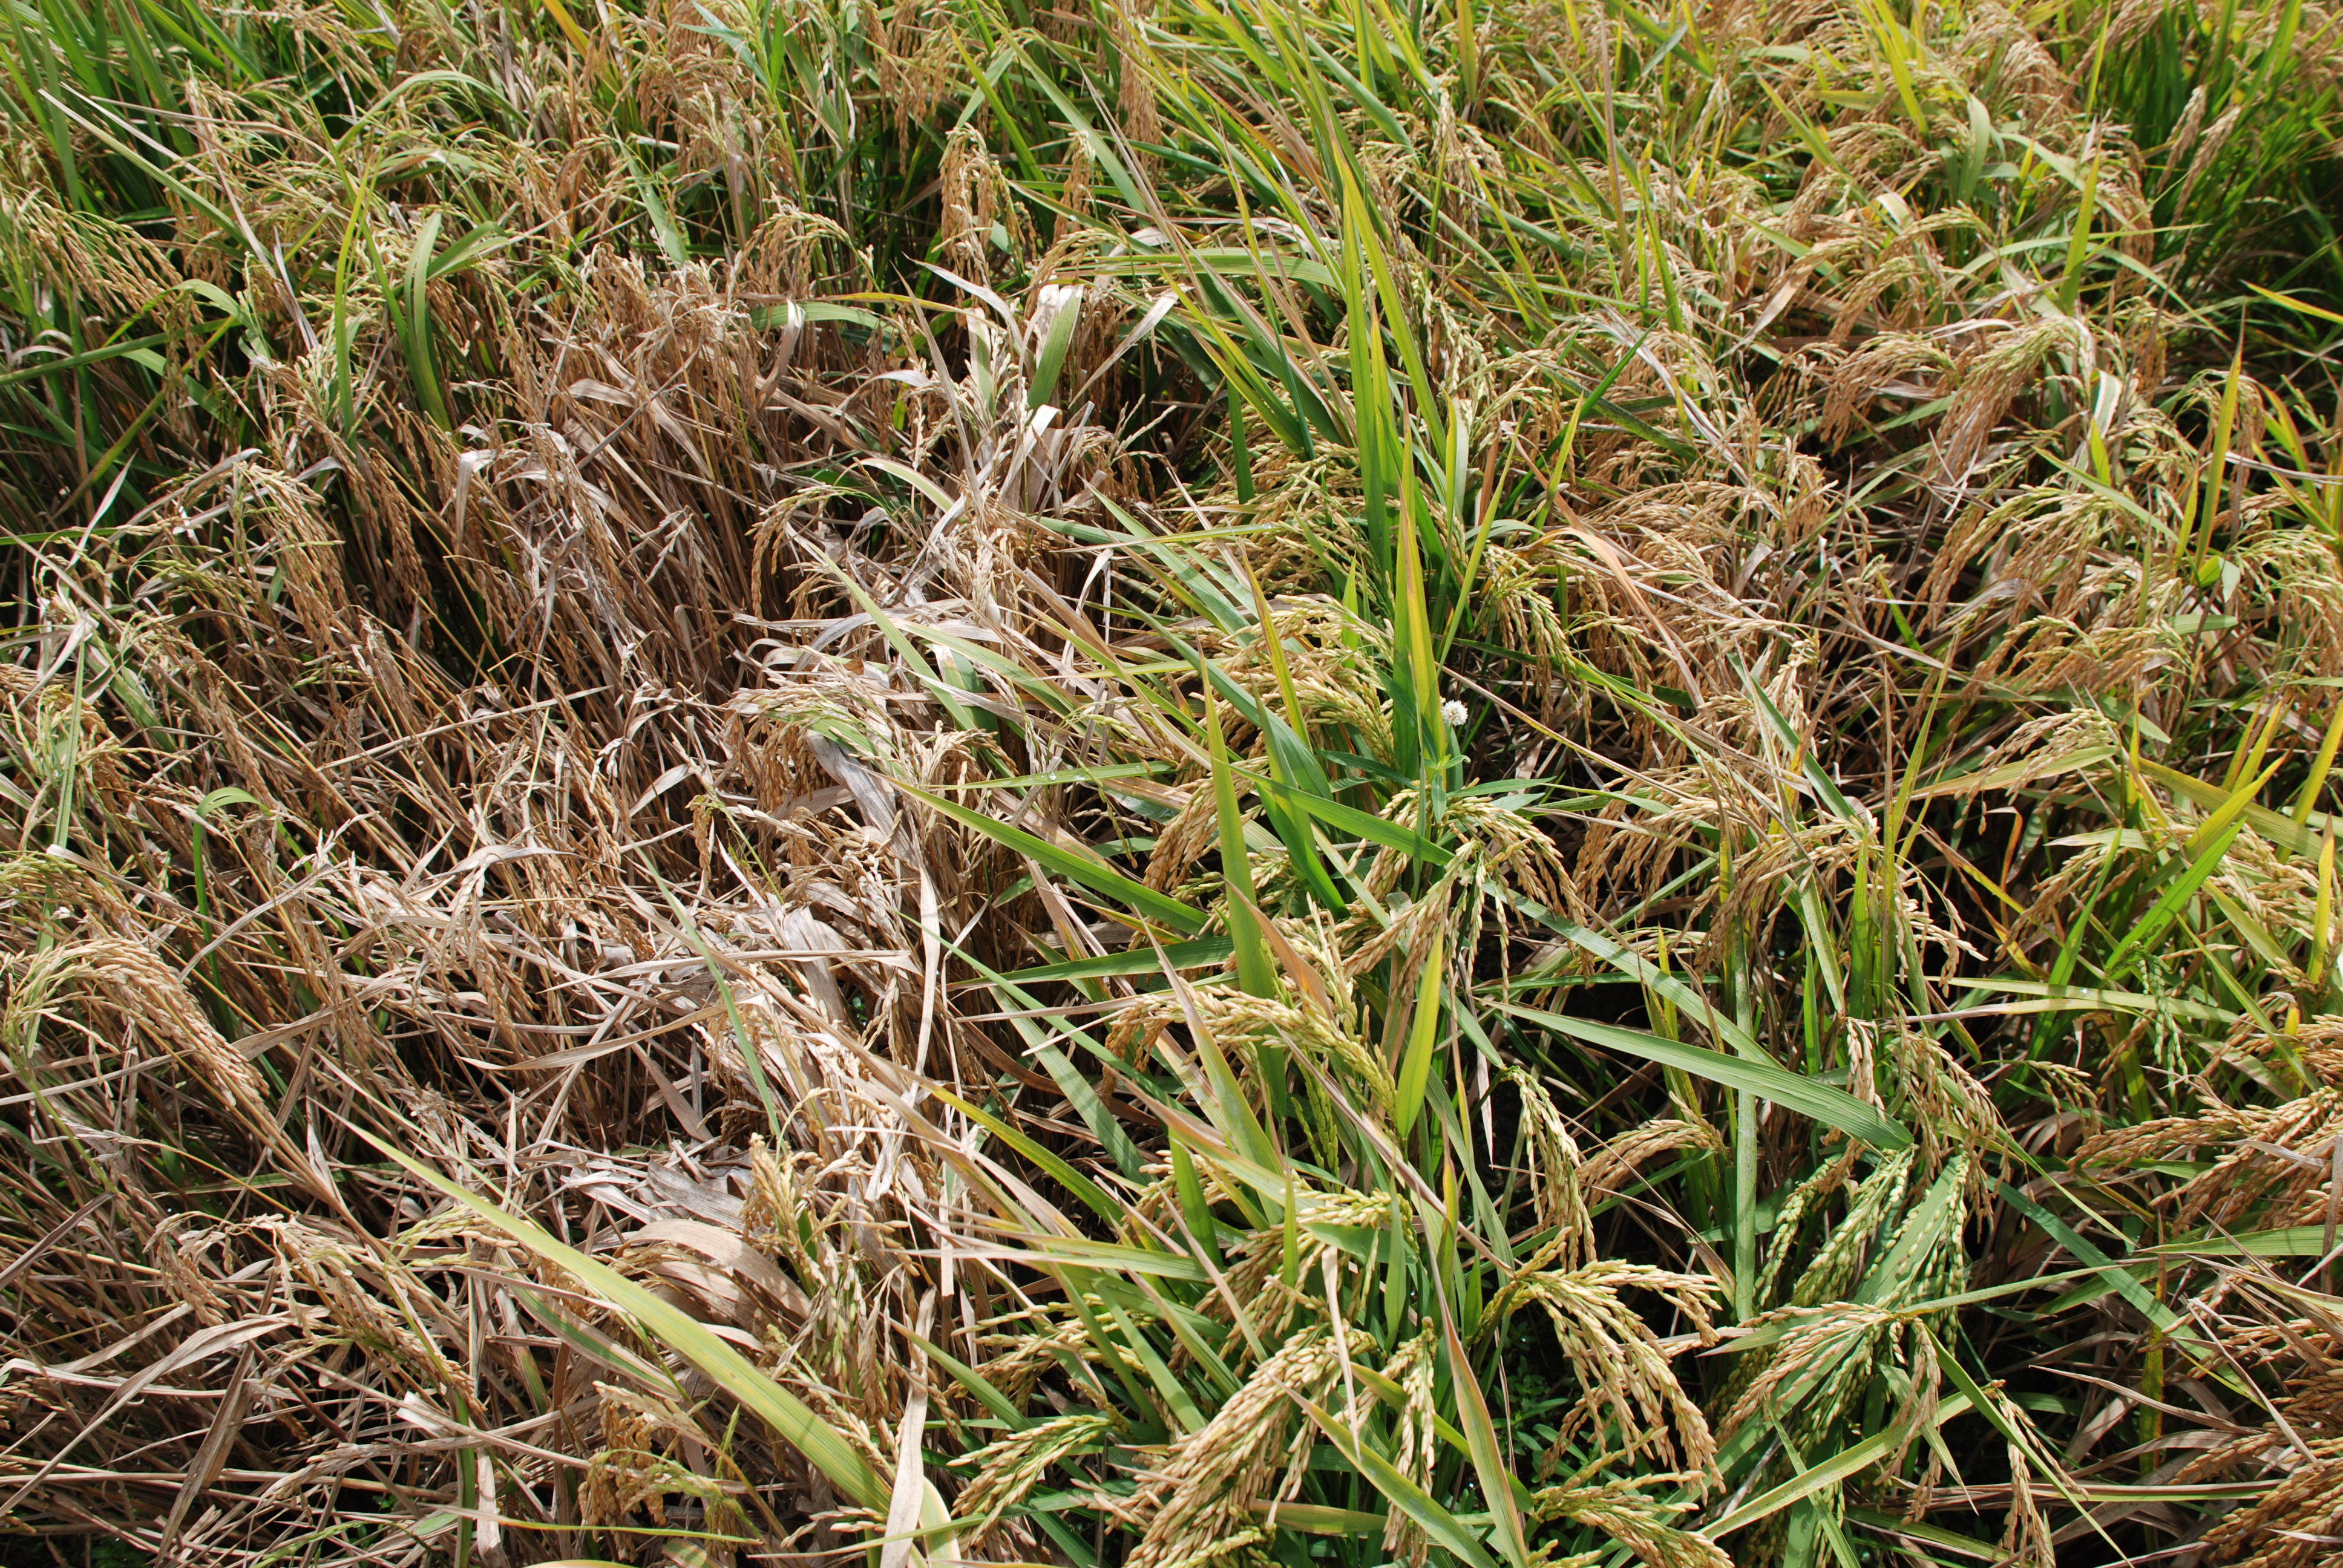 Sheath Blight-Resistant and Susceptibe Lines